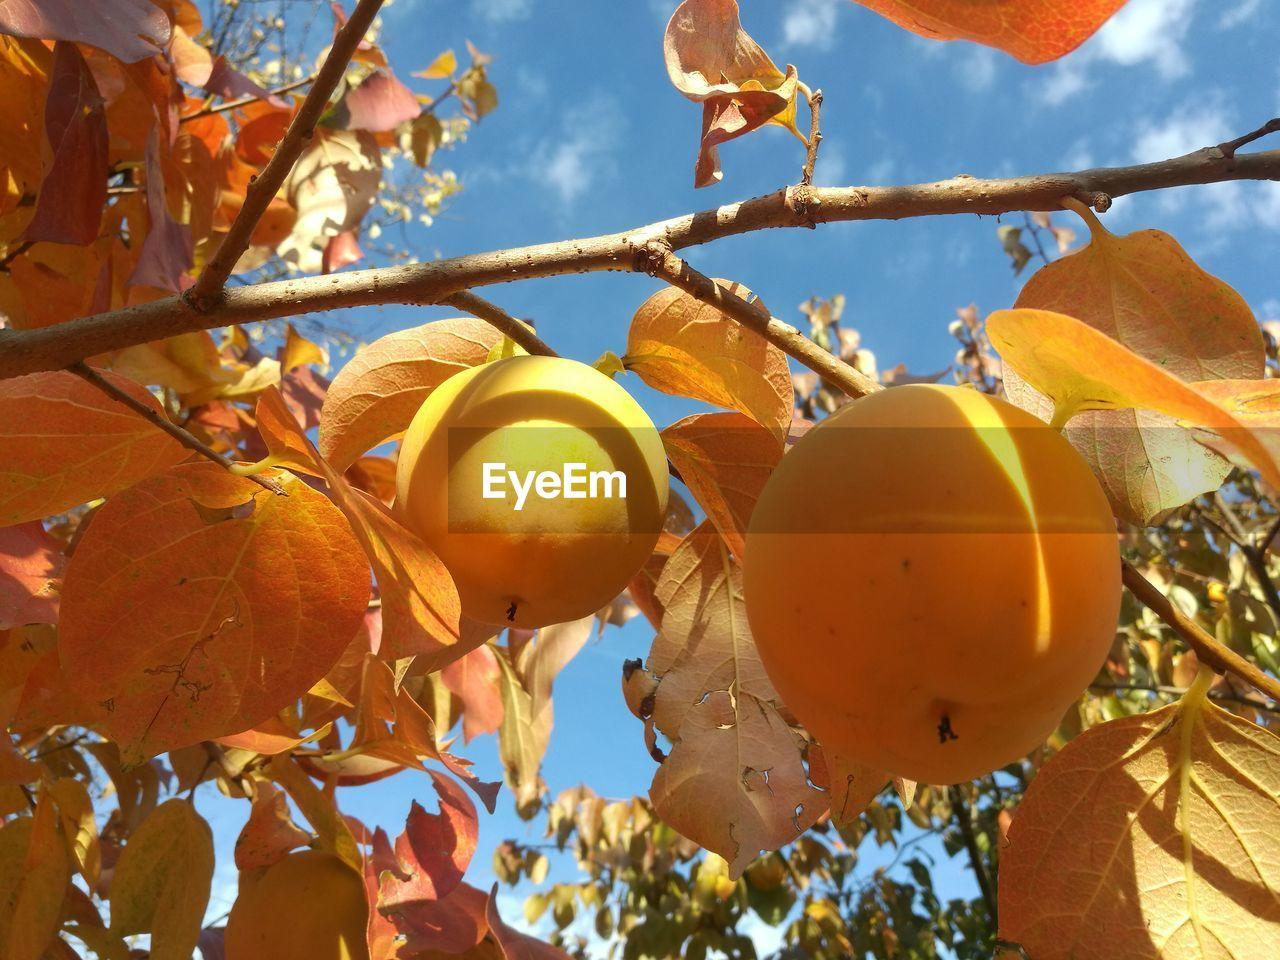 fruit, food and drink, leaf, food, low angle view, tree, outdoors, yellow, day, growth, healthy eating, citrus fruit, no people, nature, close-up, autumn, freshness, beauty in nature, branch, sky